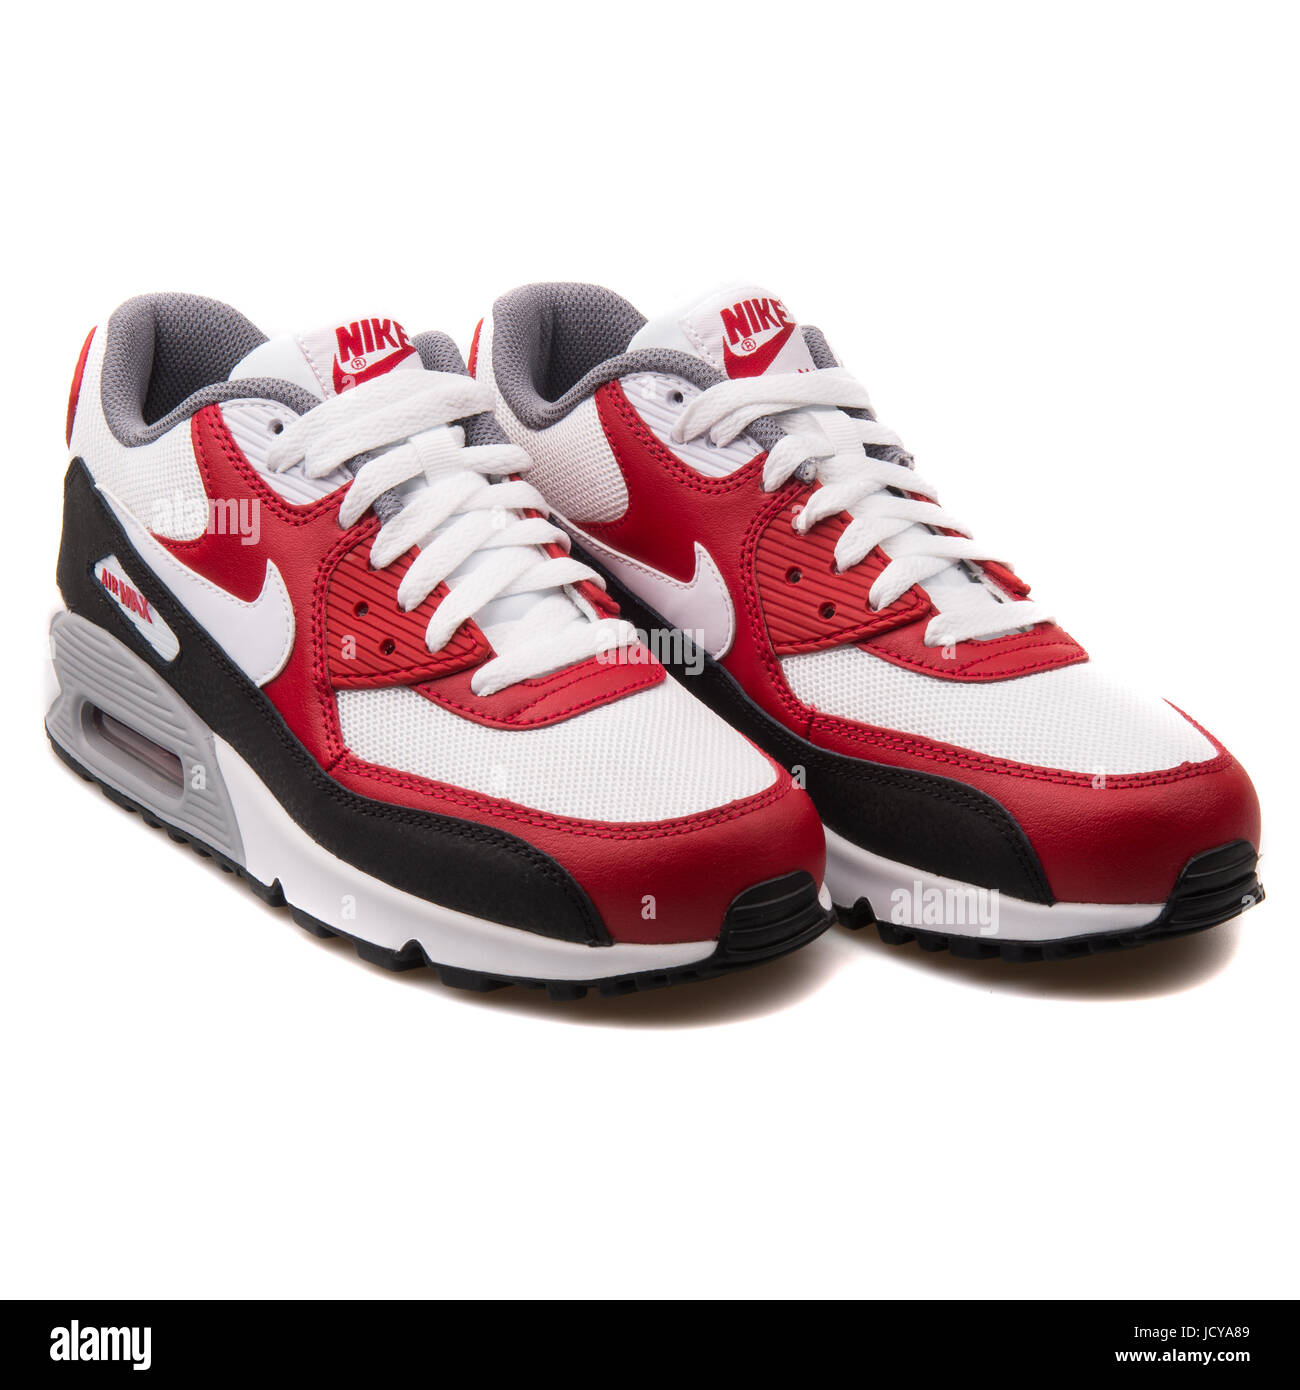 Nike Air Max 90 Mesh GS shoes white red grey